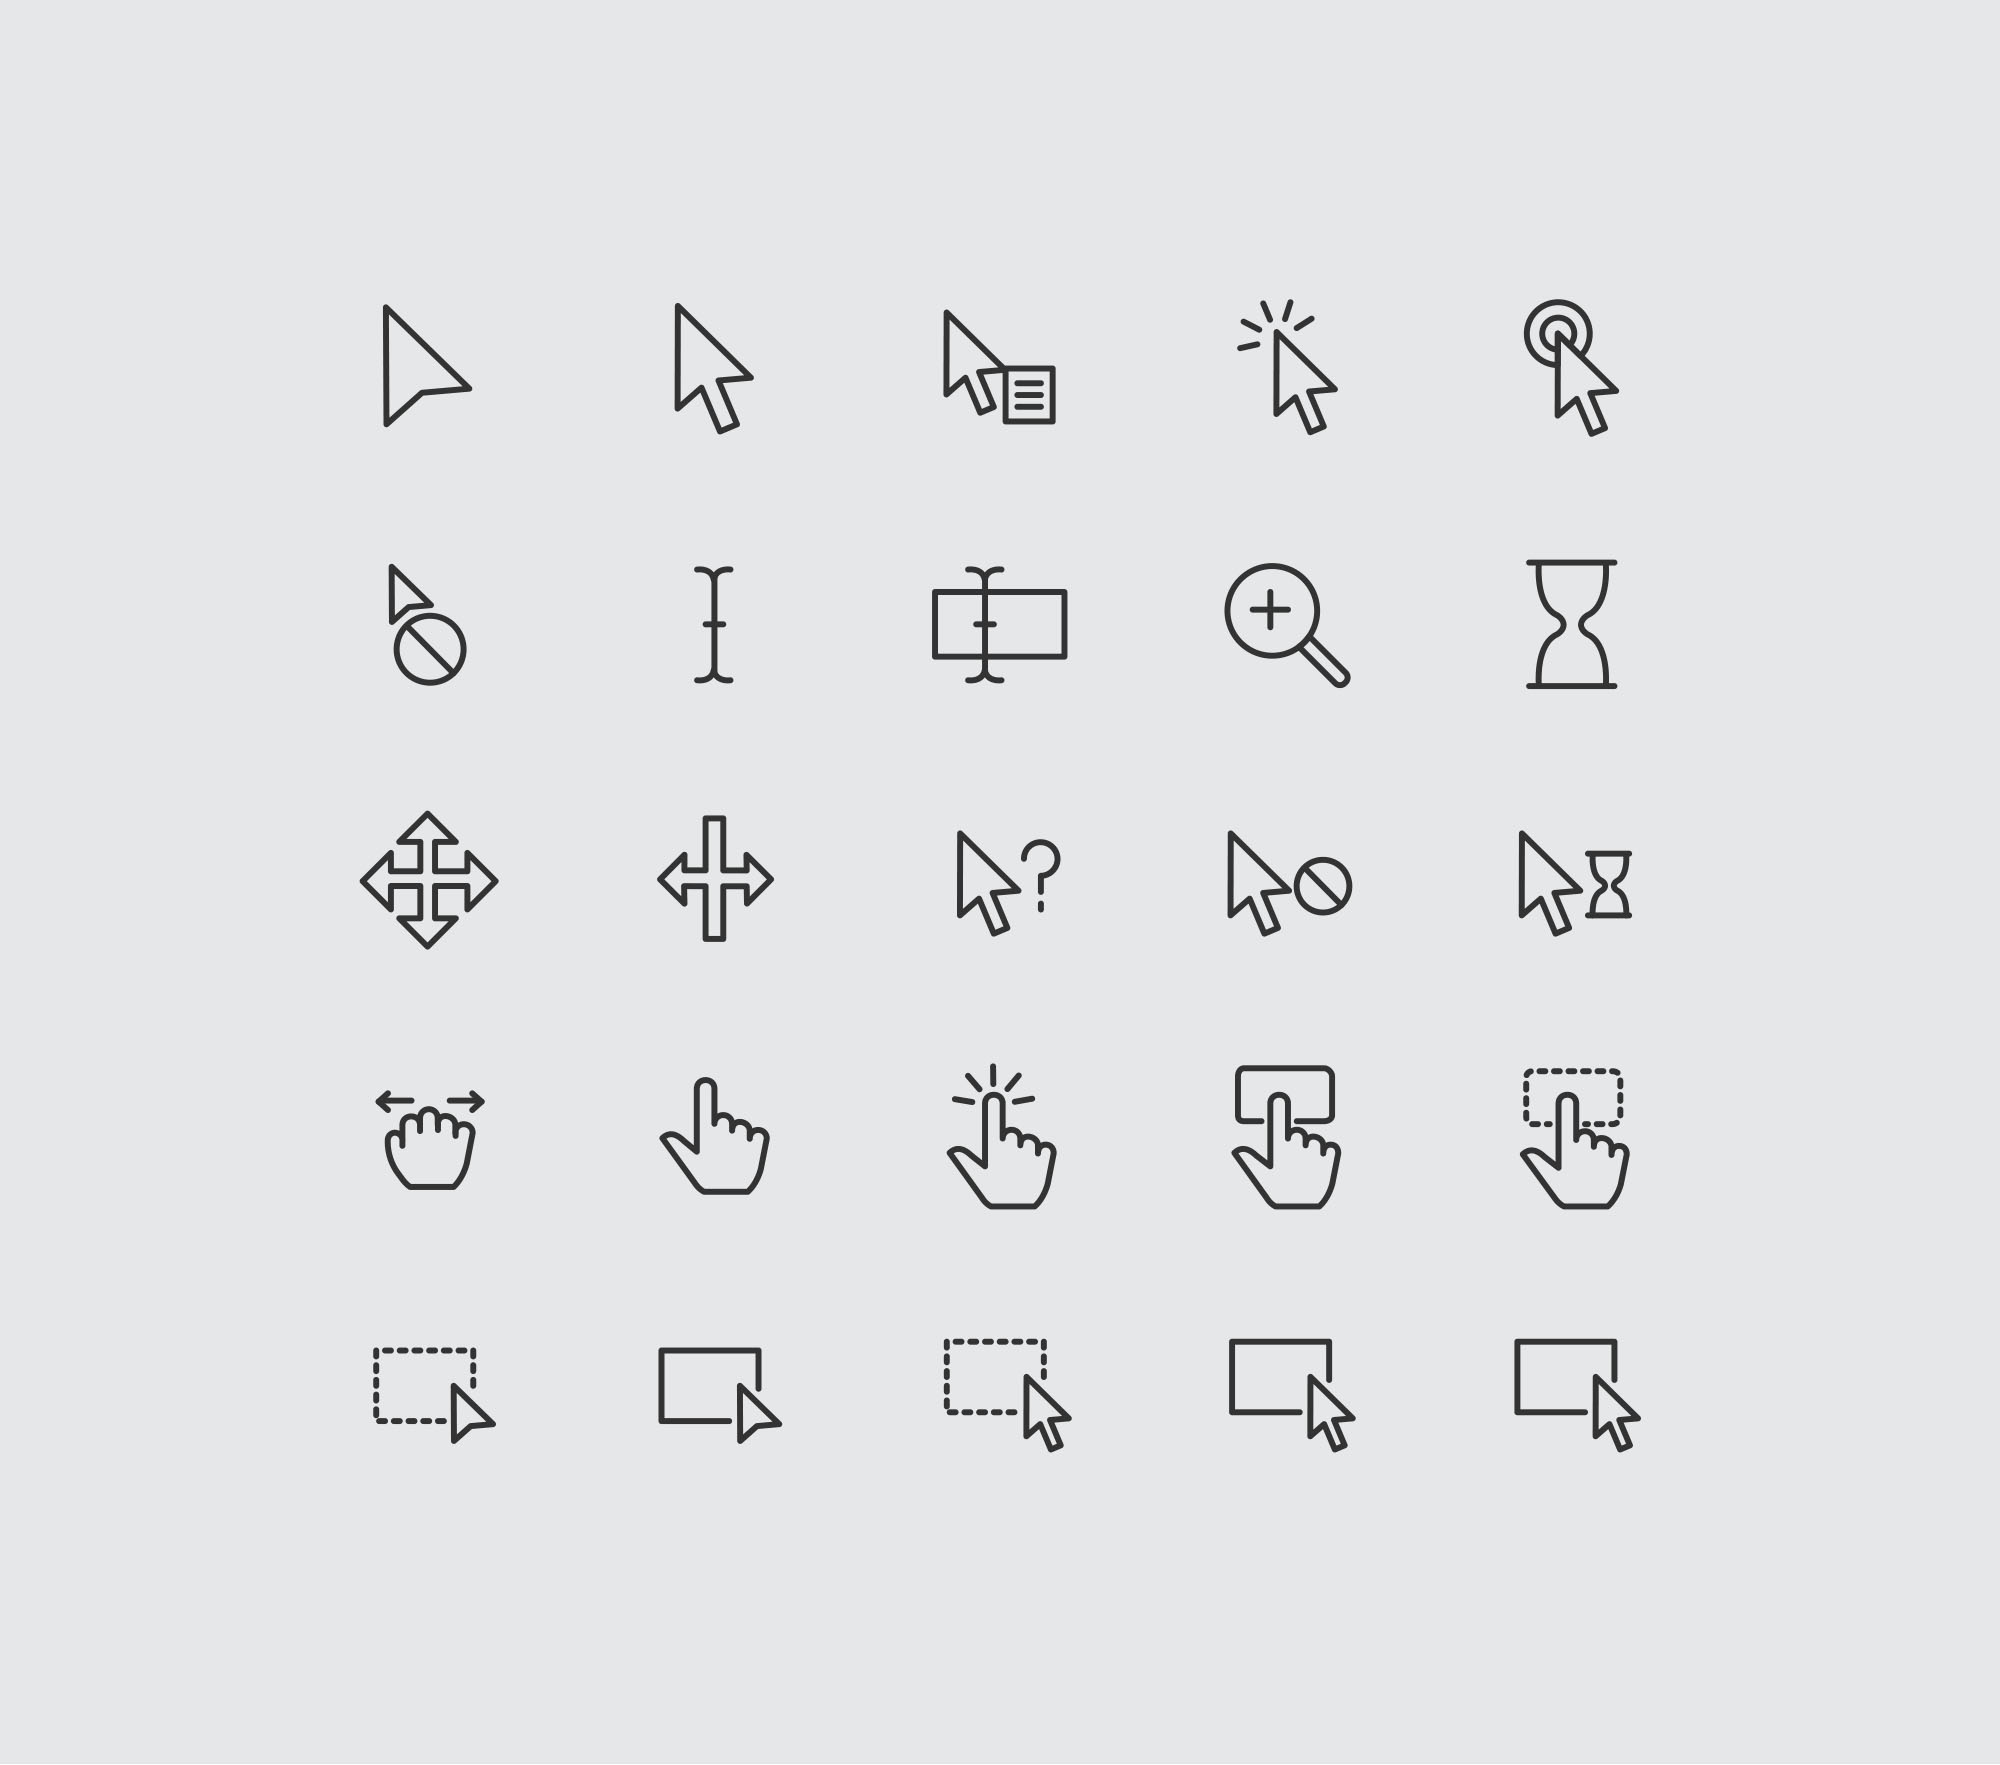 Cursor & Selection Icons - Light